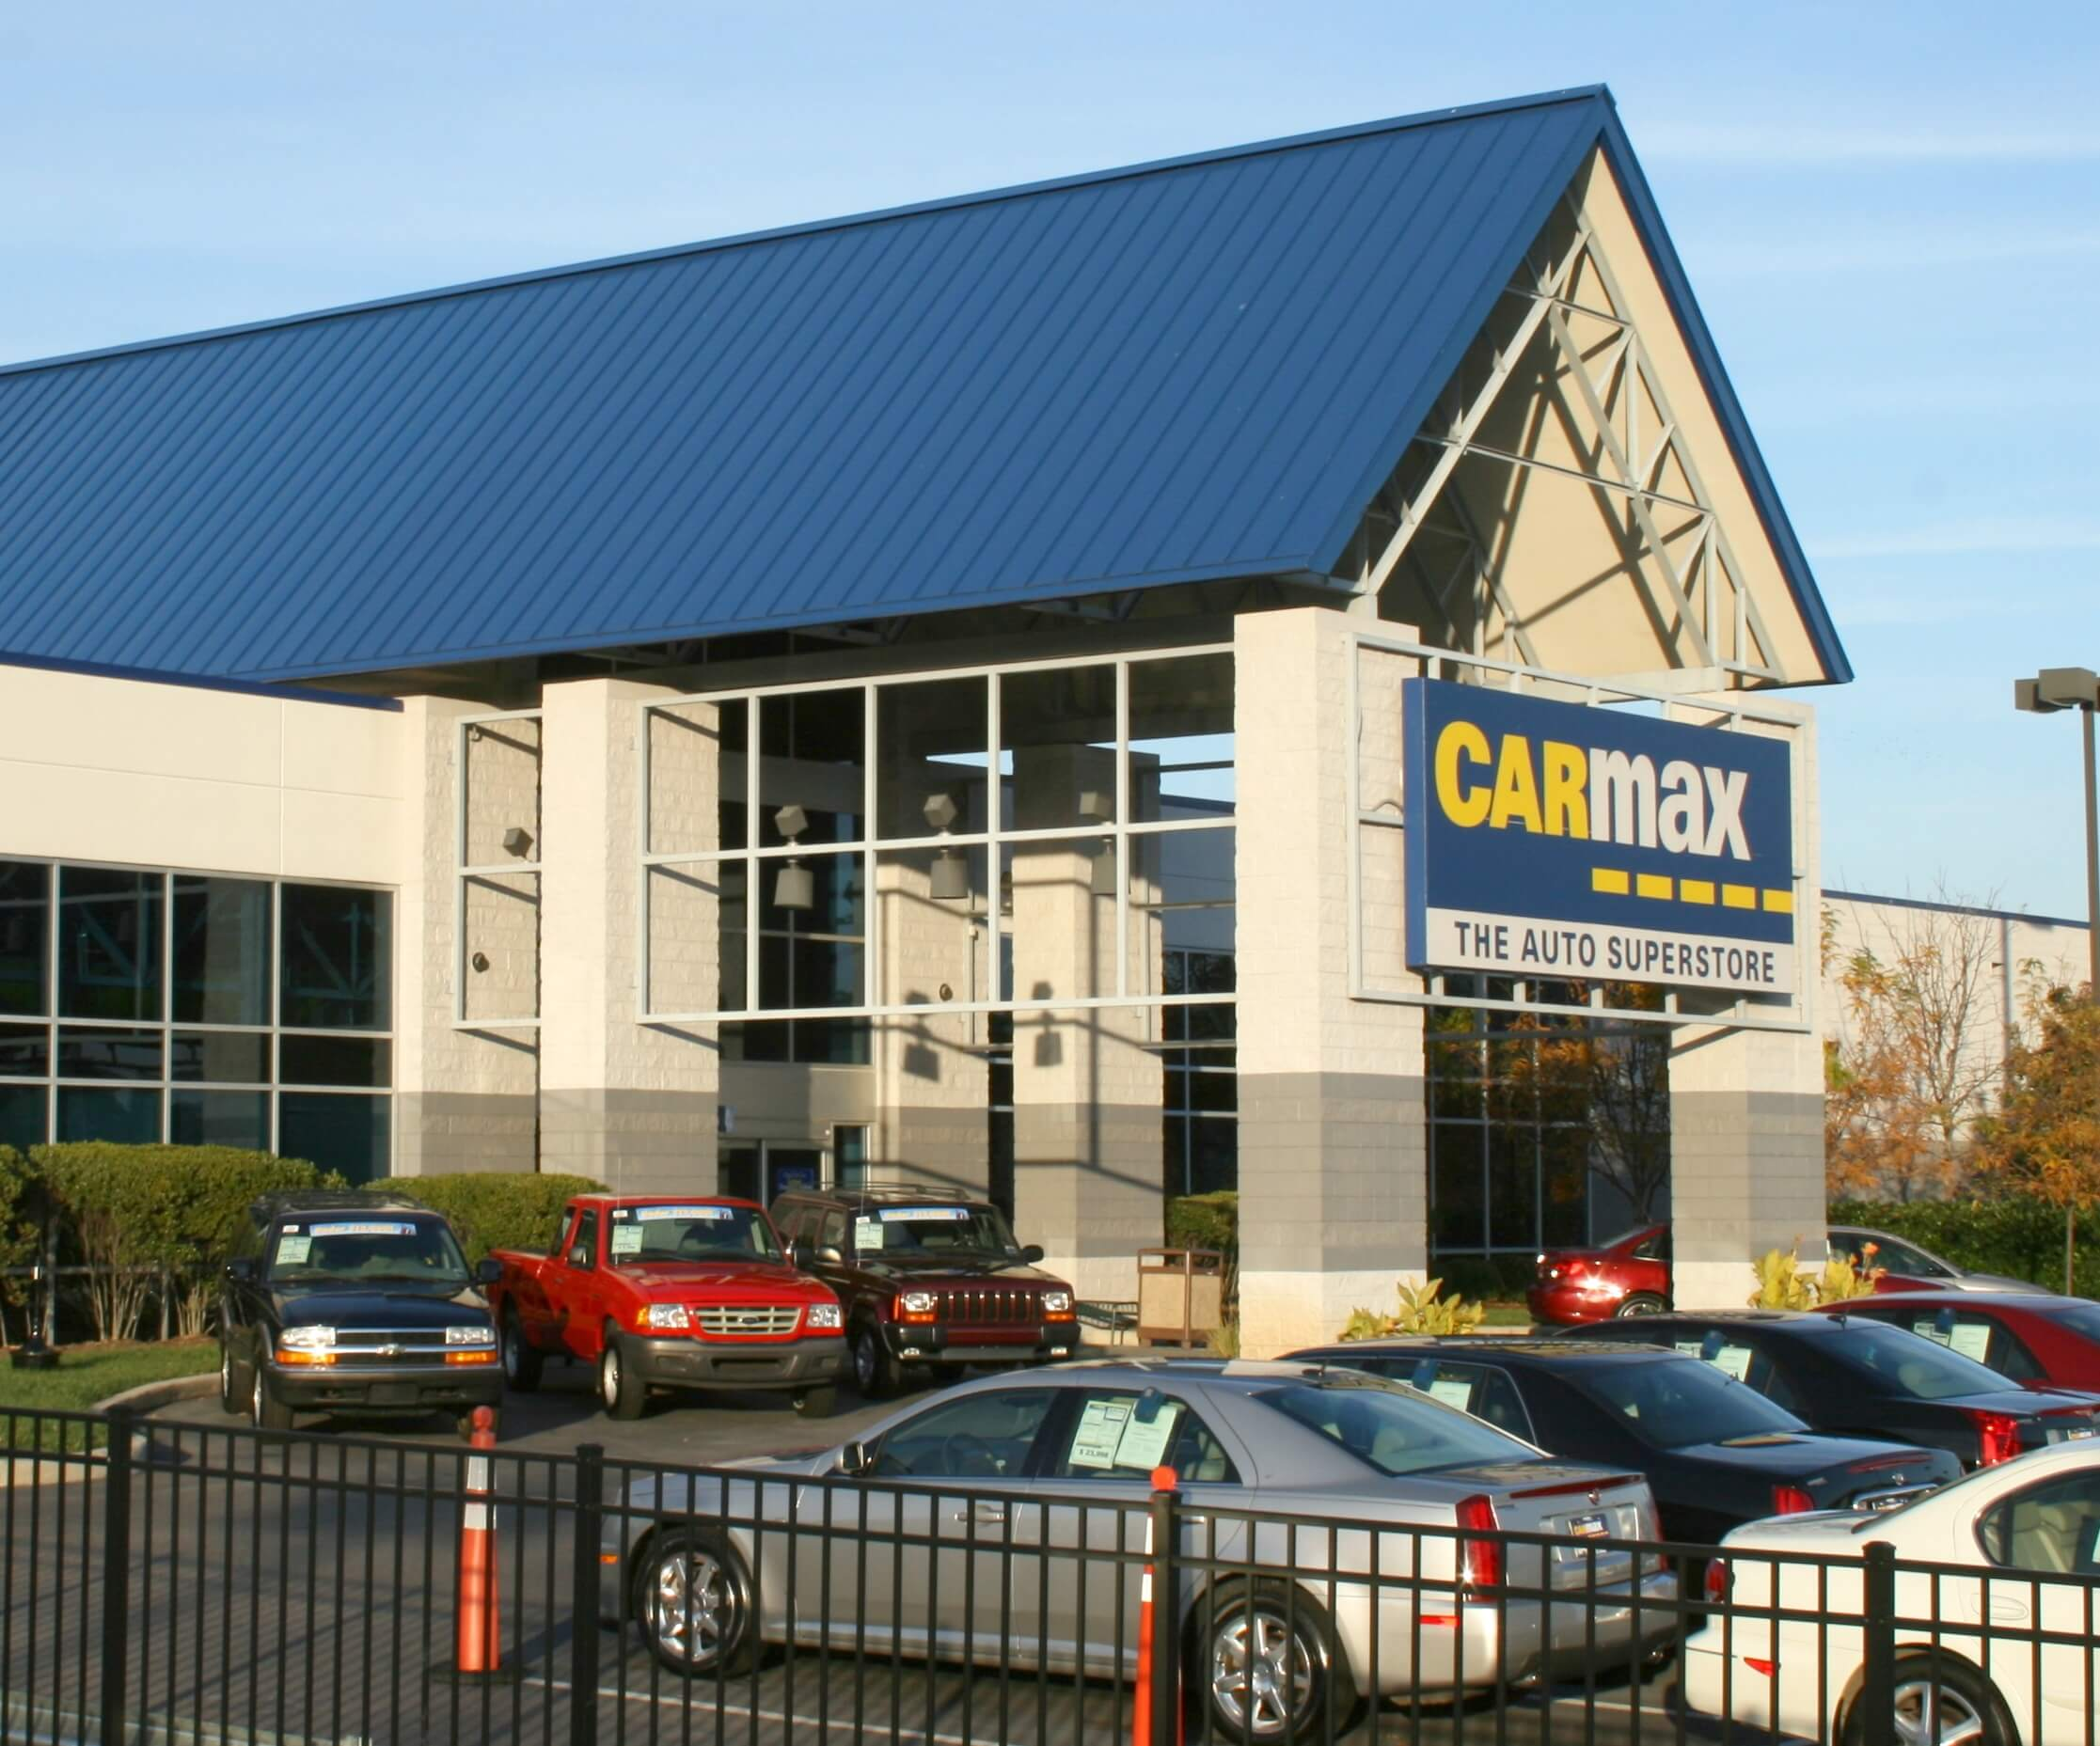 Raleigh Car Dealerships >> CarMax to Open New Dealership in Cranston, Rhode Island - Commercial Property - Crehq.com